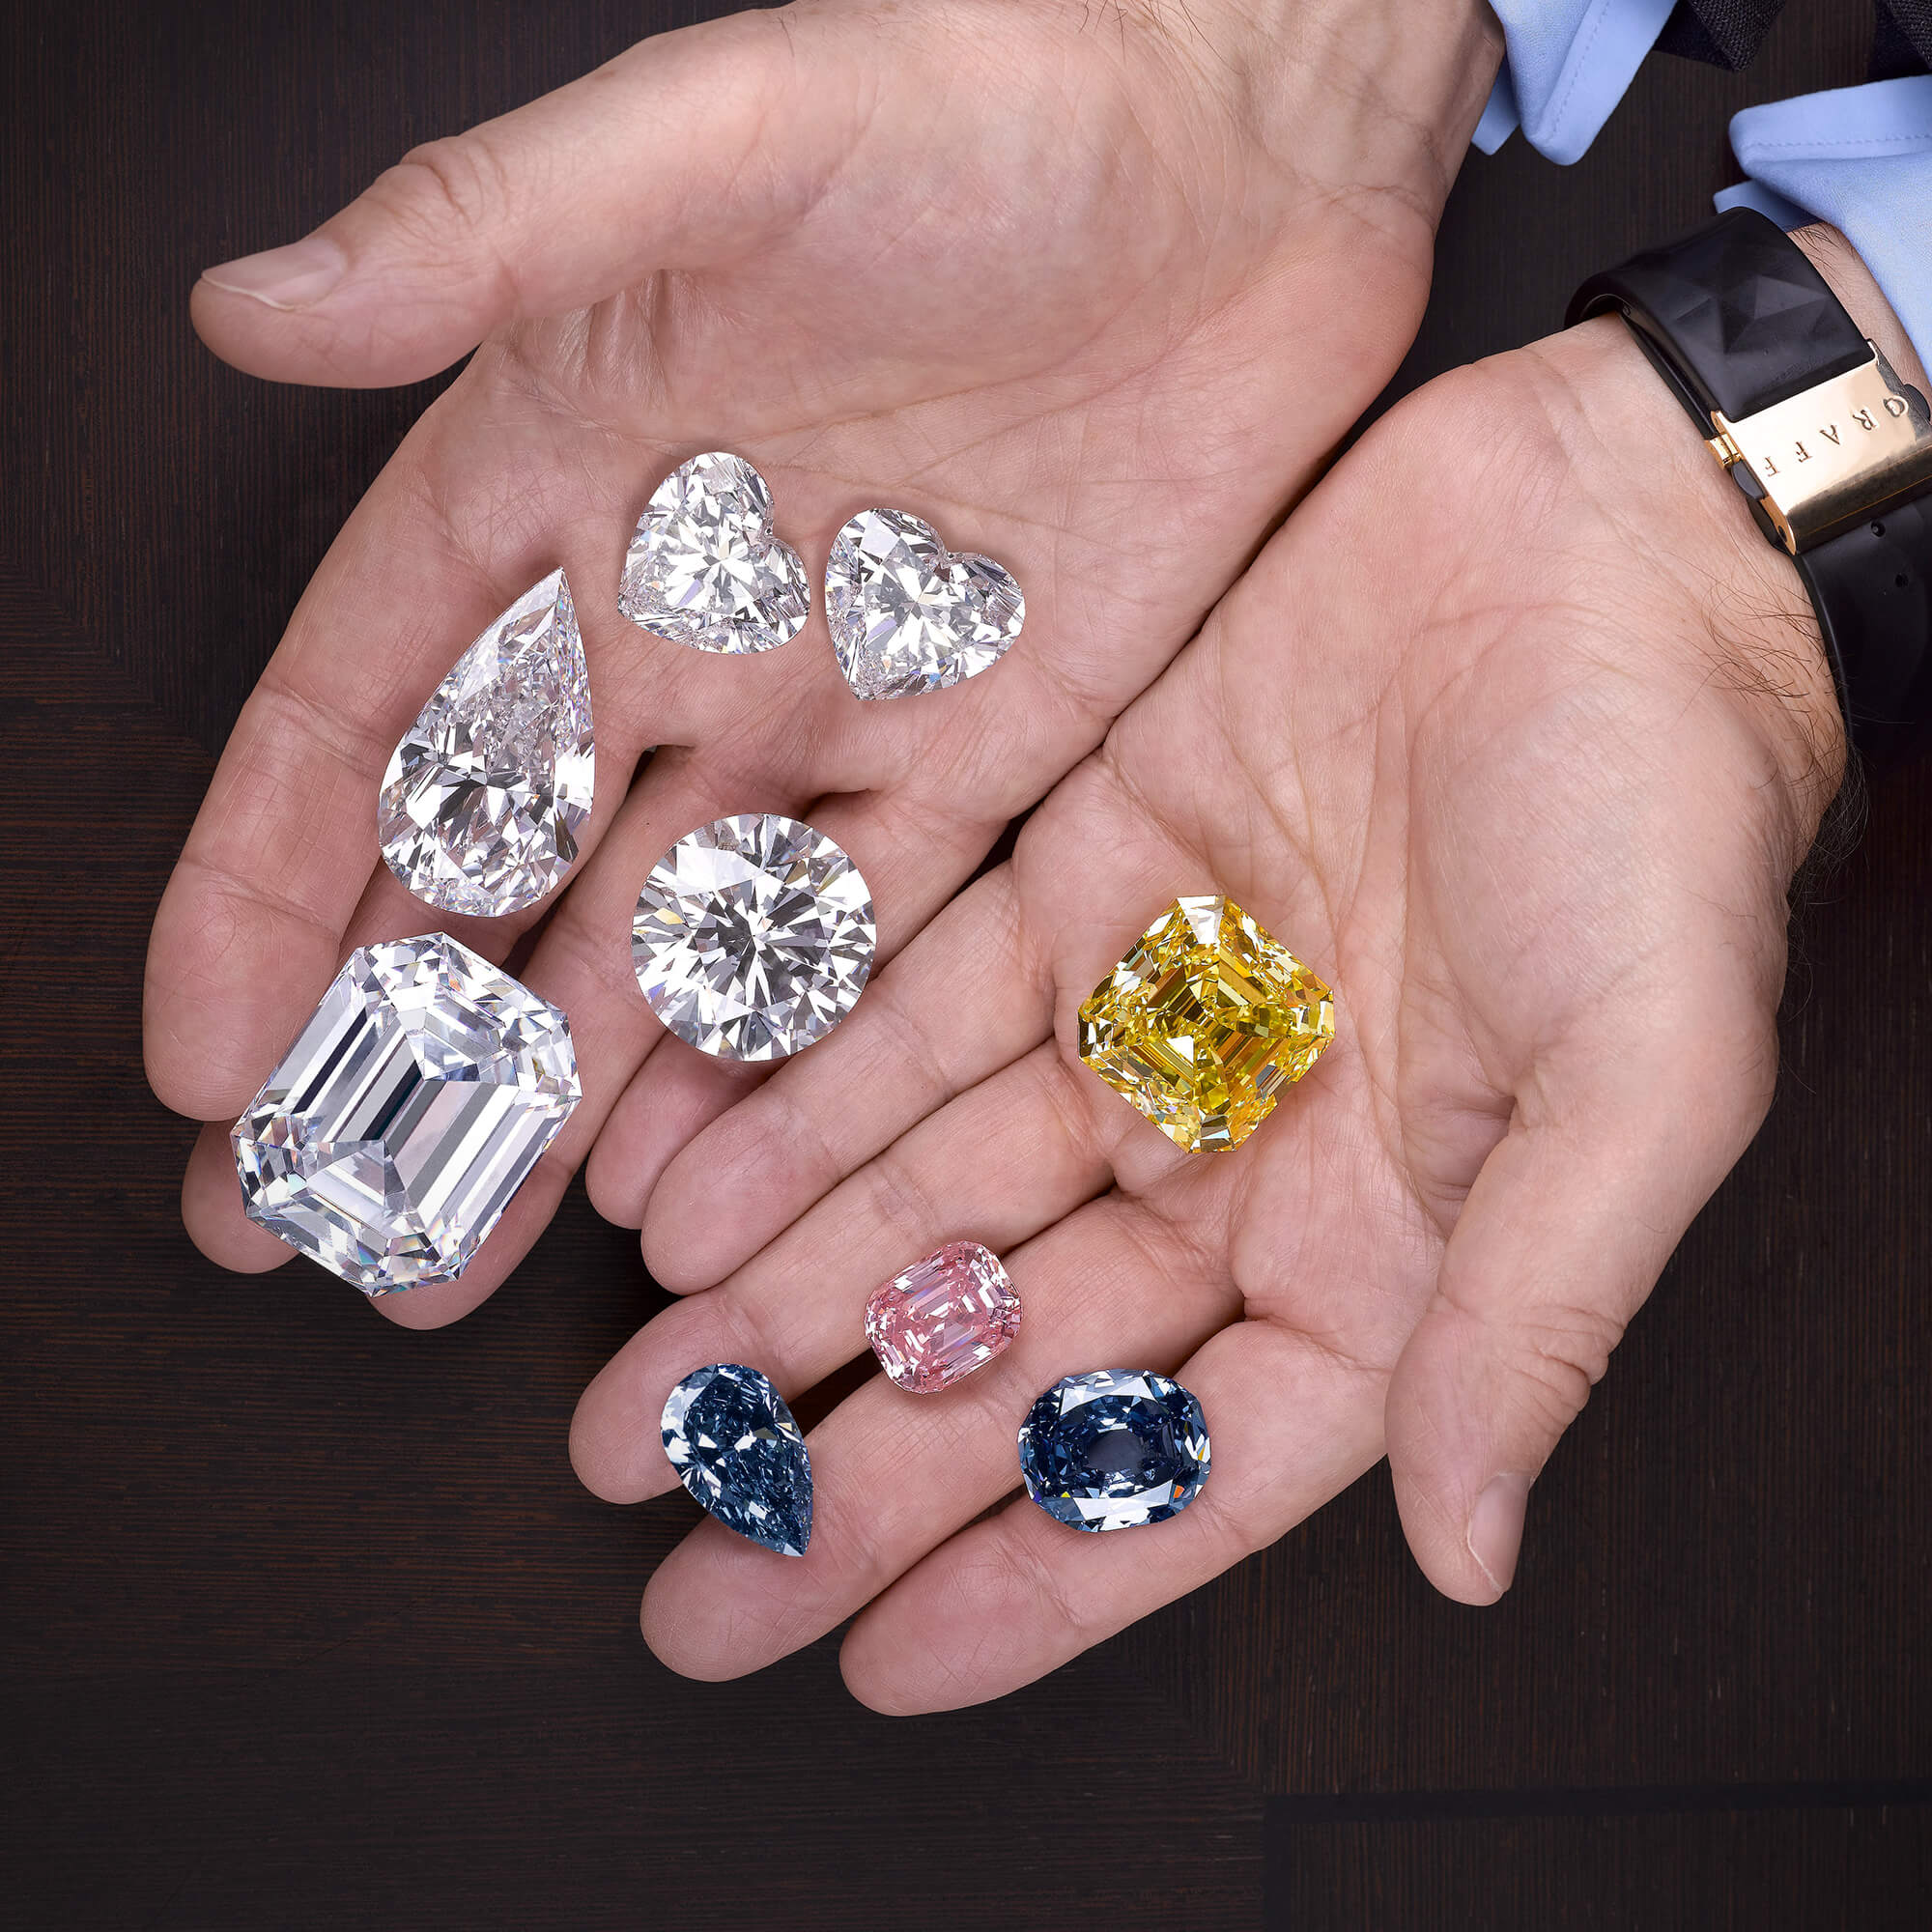 Historical Graff DIamonds from the Star of Bombay to the Graff Perfection in the hands of Mr Laurence Graff